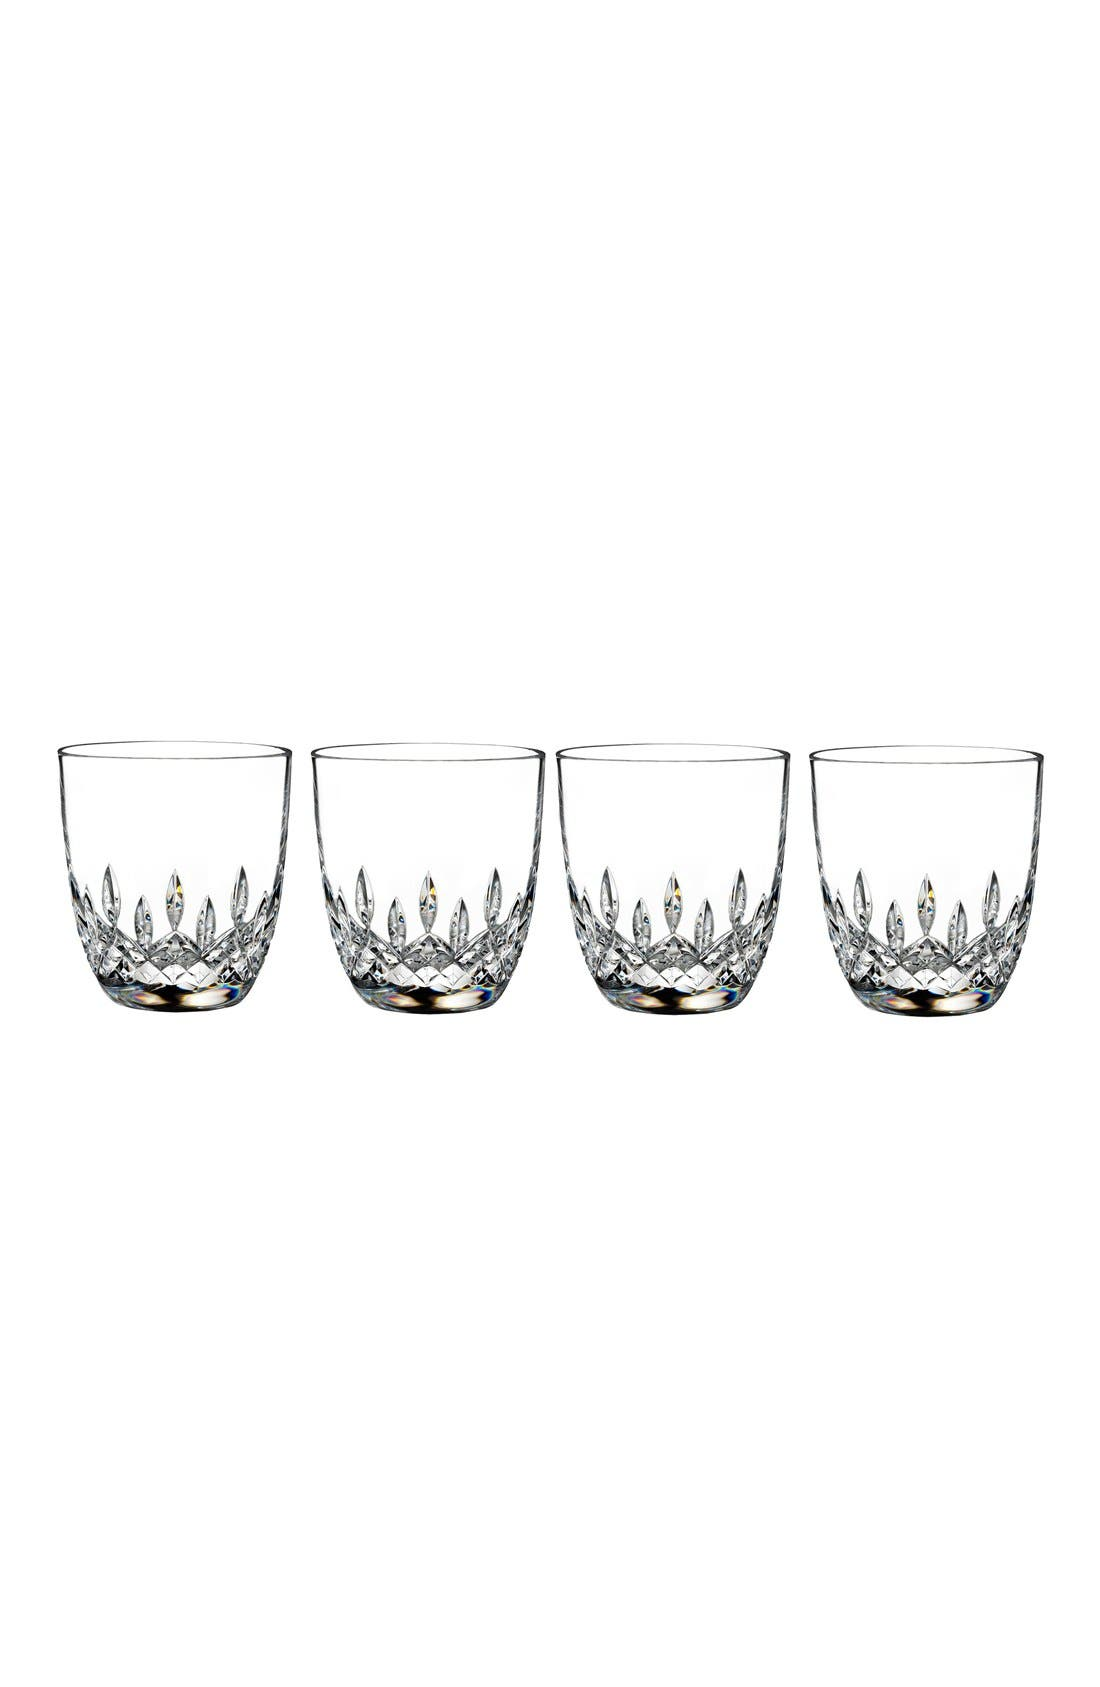 Main Image - Waterford 'Lismore Encore' Lead Crystal Double Old-Fashioned Glasses (Set of 4)